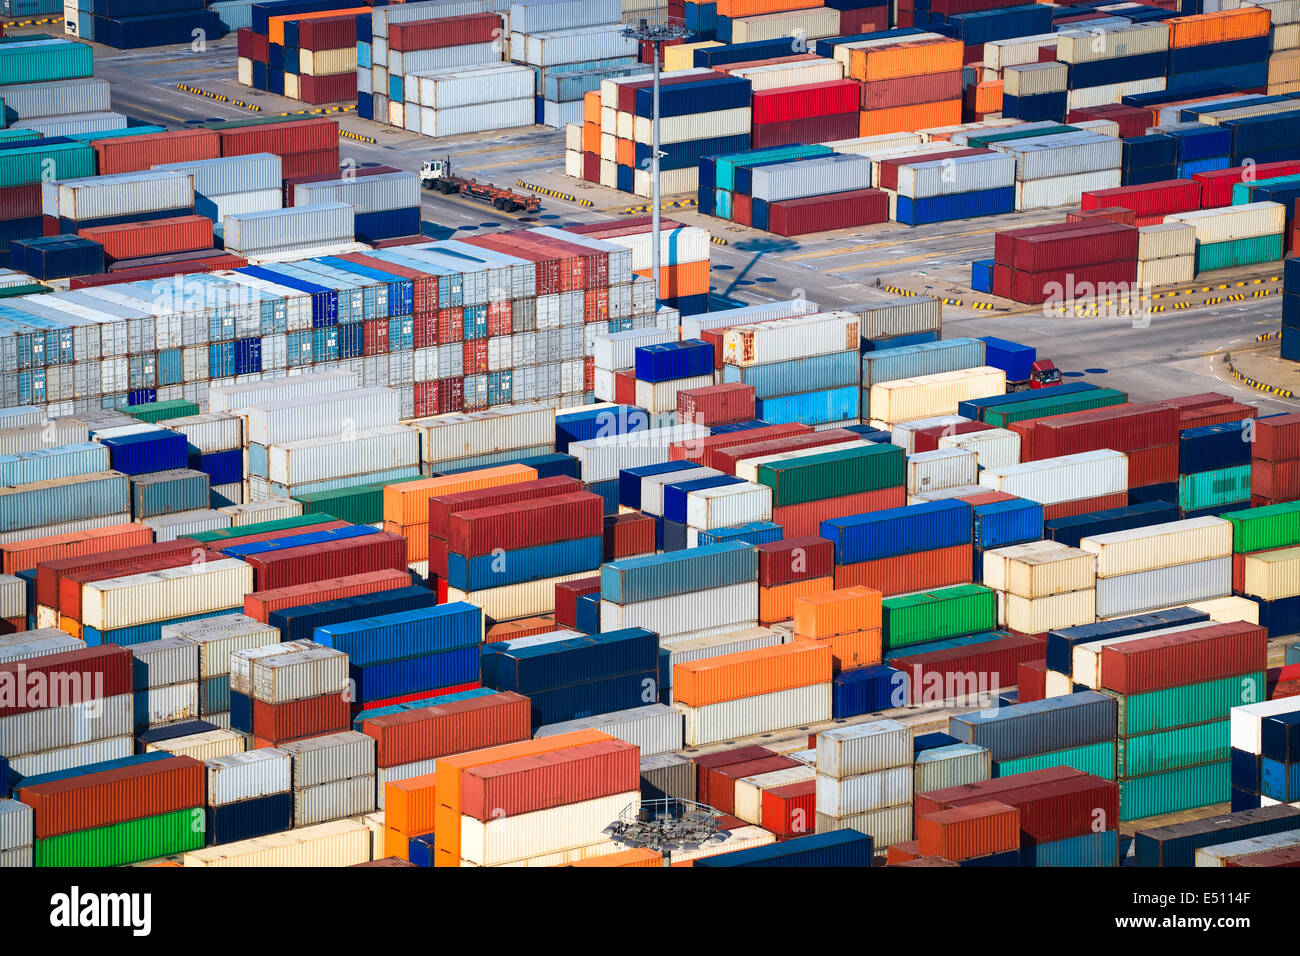 a lot of shipping containers Stock Photo